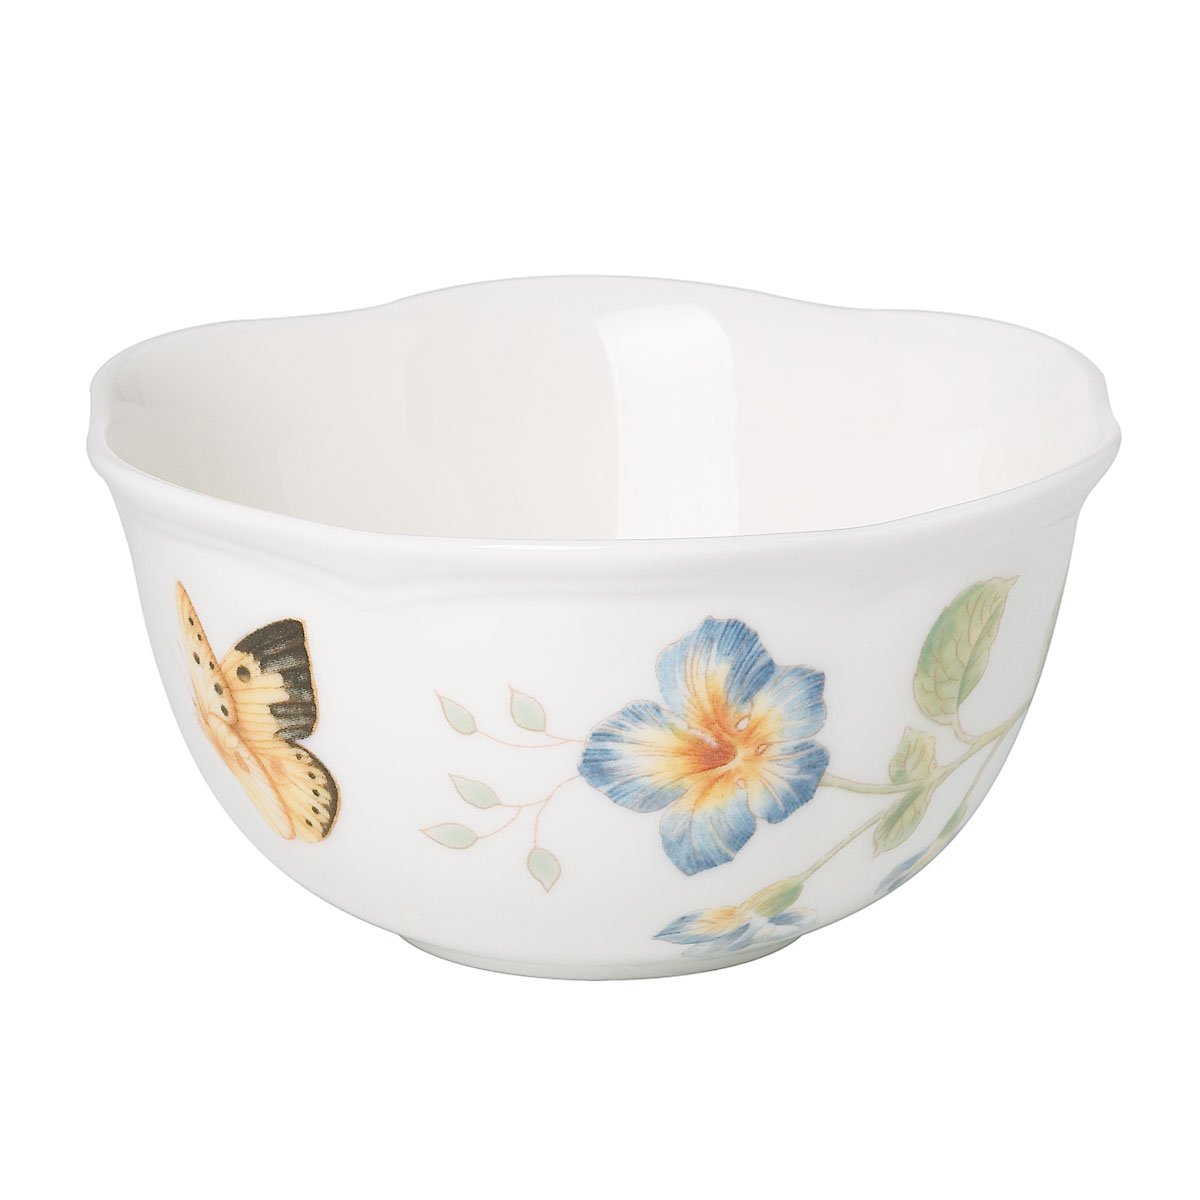 Lenox Butterfly Meadow Dinnerware Dessert Bowl